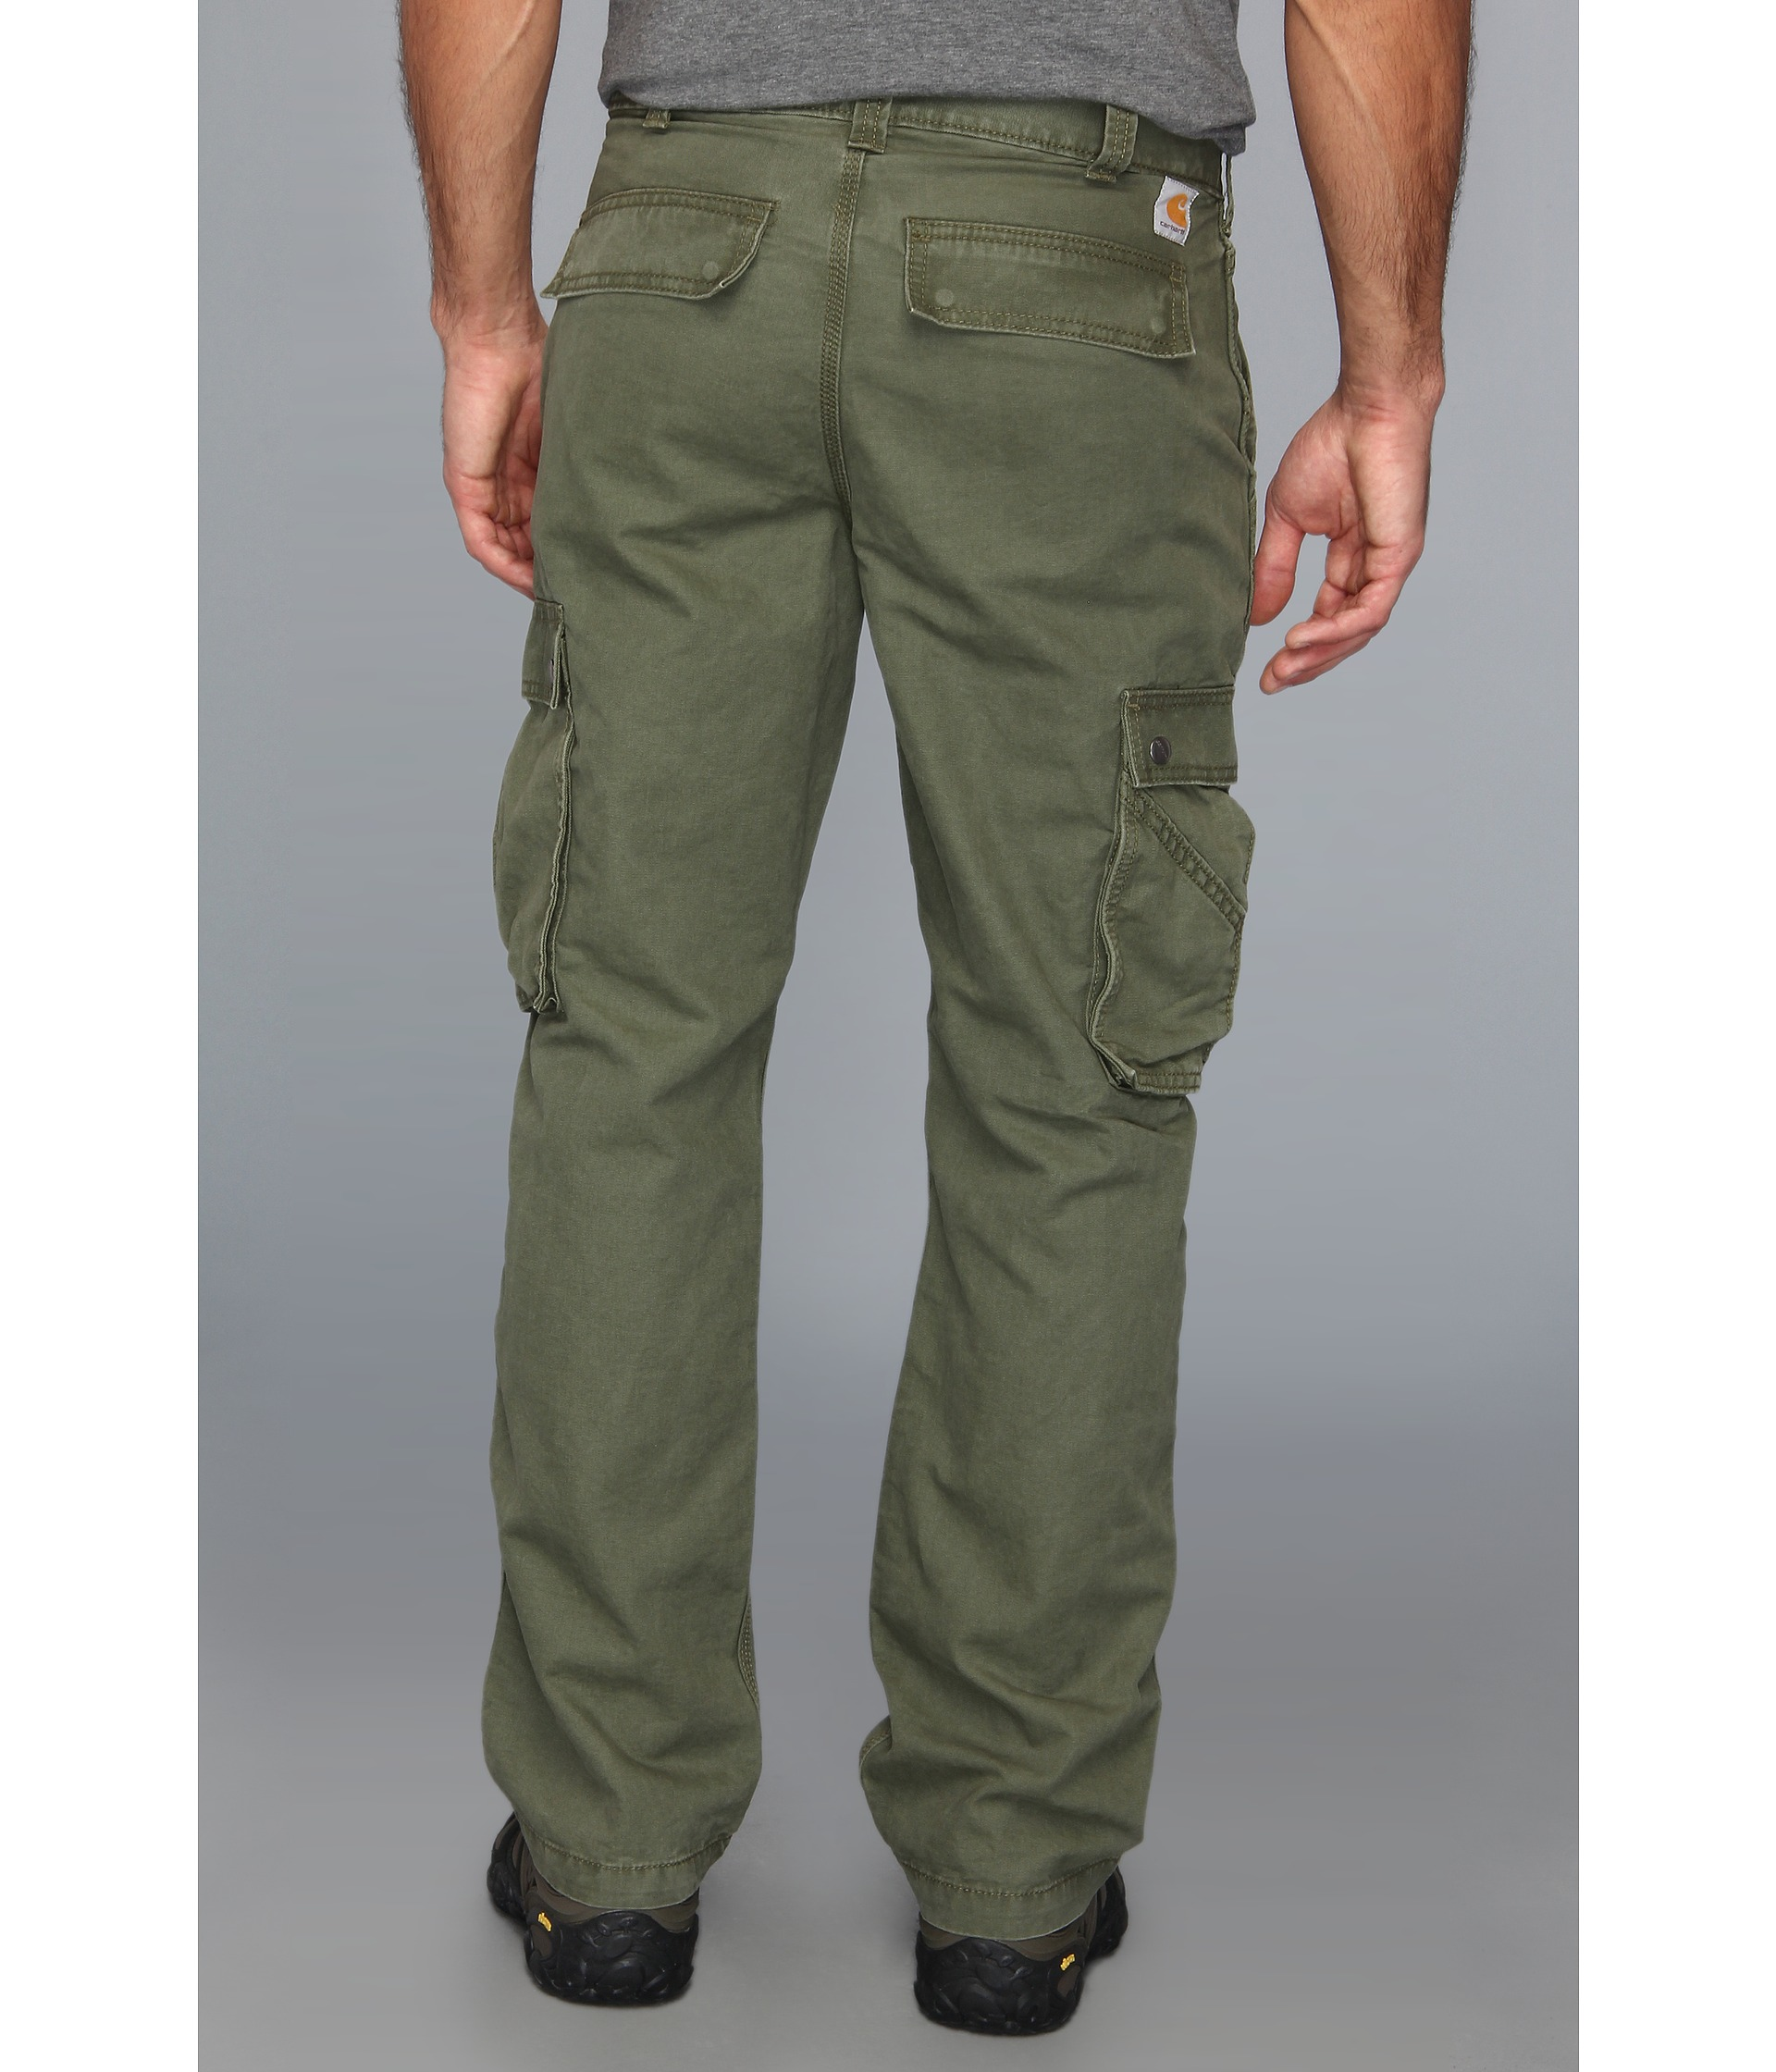 Perfect Carhartt Cargo Pants  Carhartt X39 Aviation Cargo Pants  Cypress